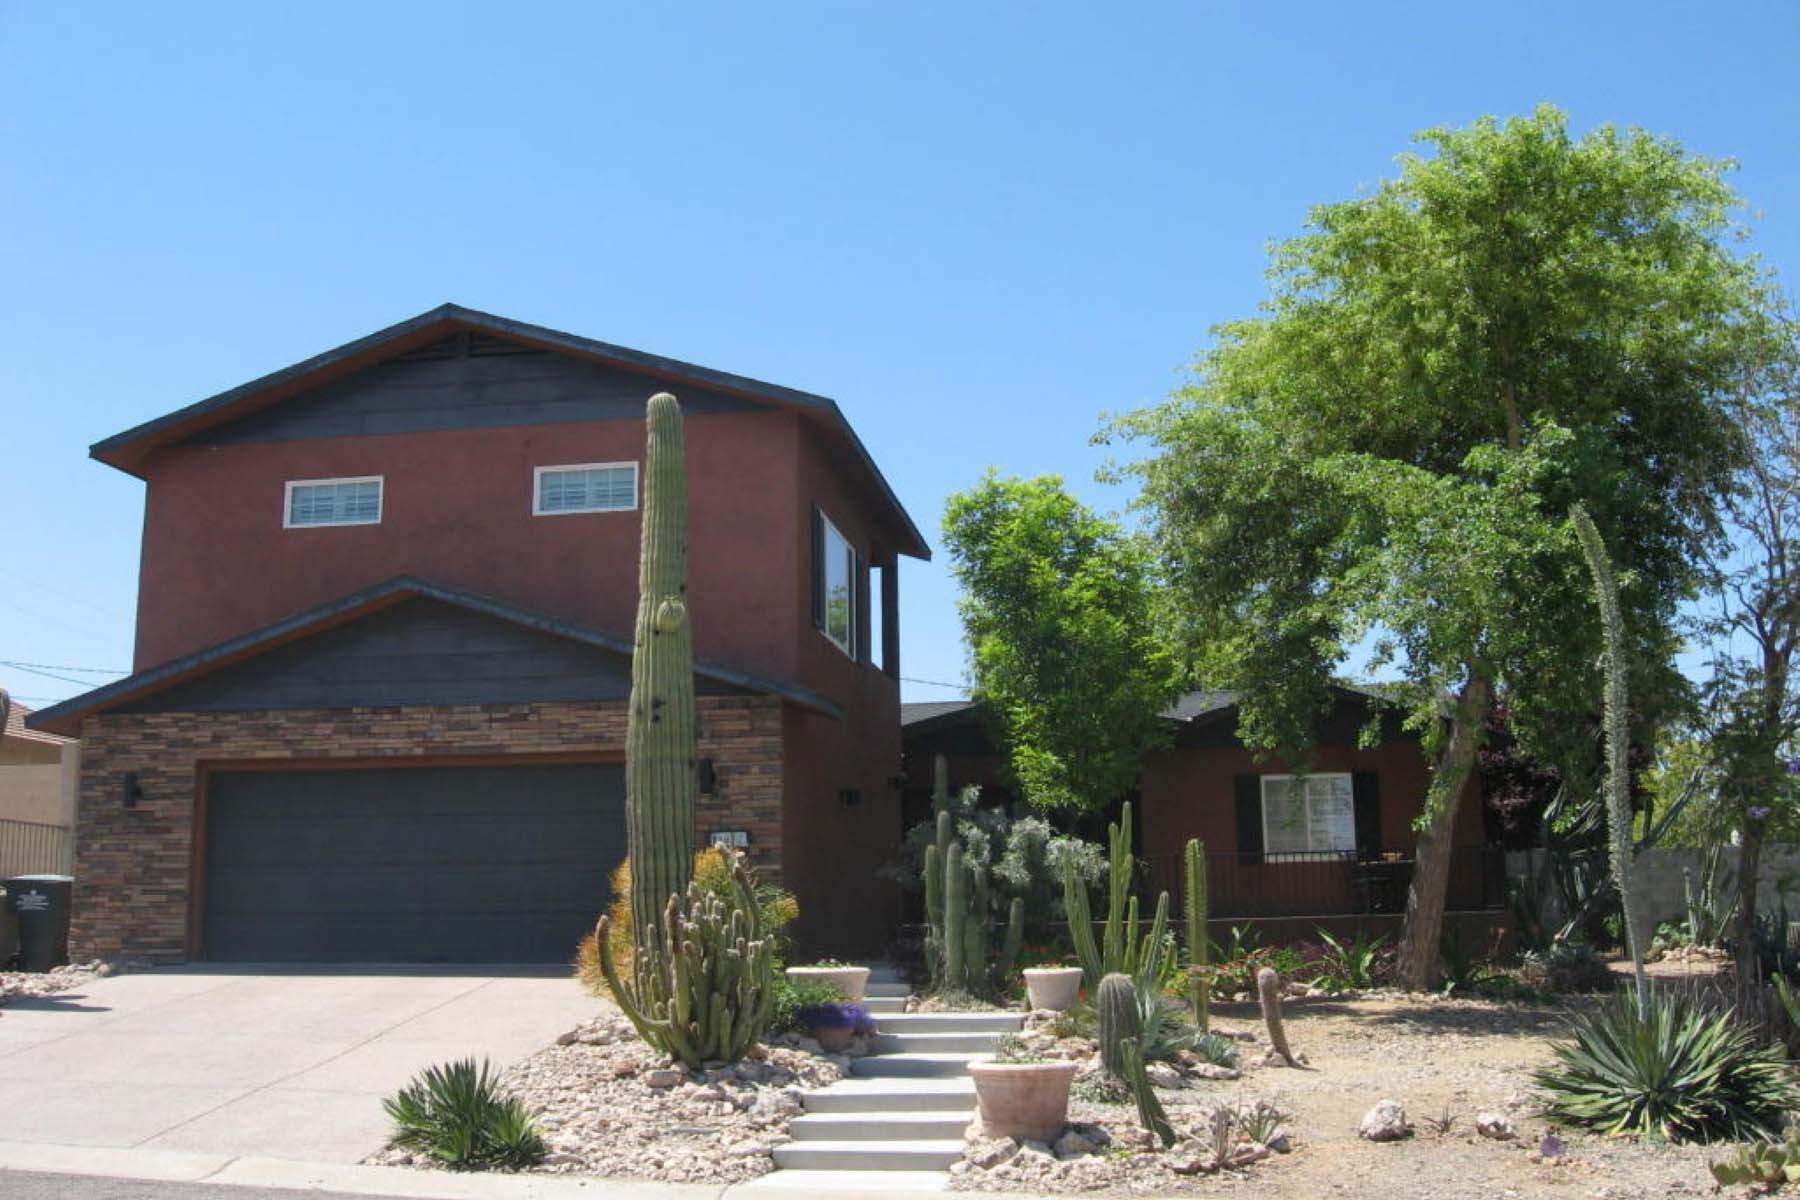 一戸建て のために 売買 アット Charming three bedroom, 2.5 Bath well placed on a hill with Mountain Views. 13418 N 19TH ST Phoenix, アリゾナ 85022 アメリカ合衆国